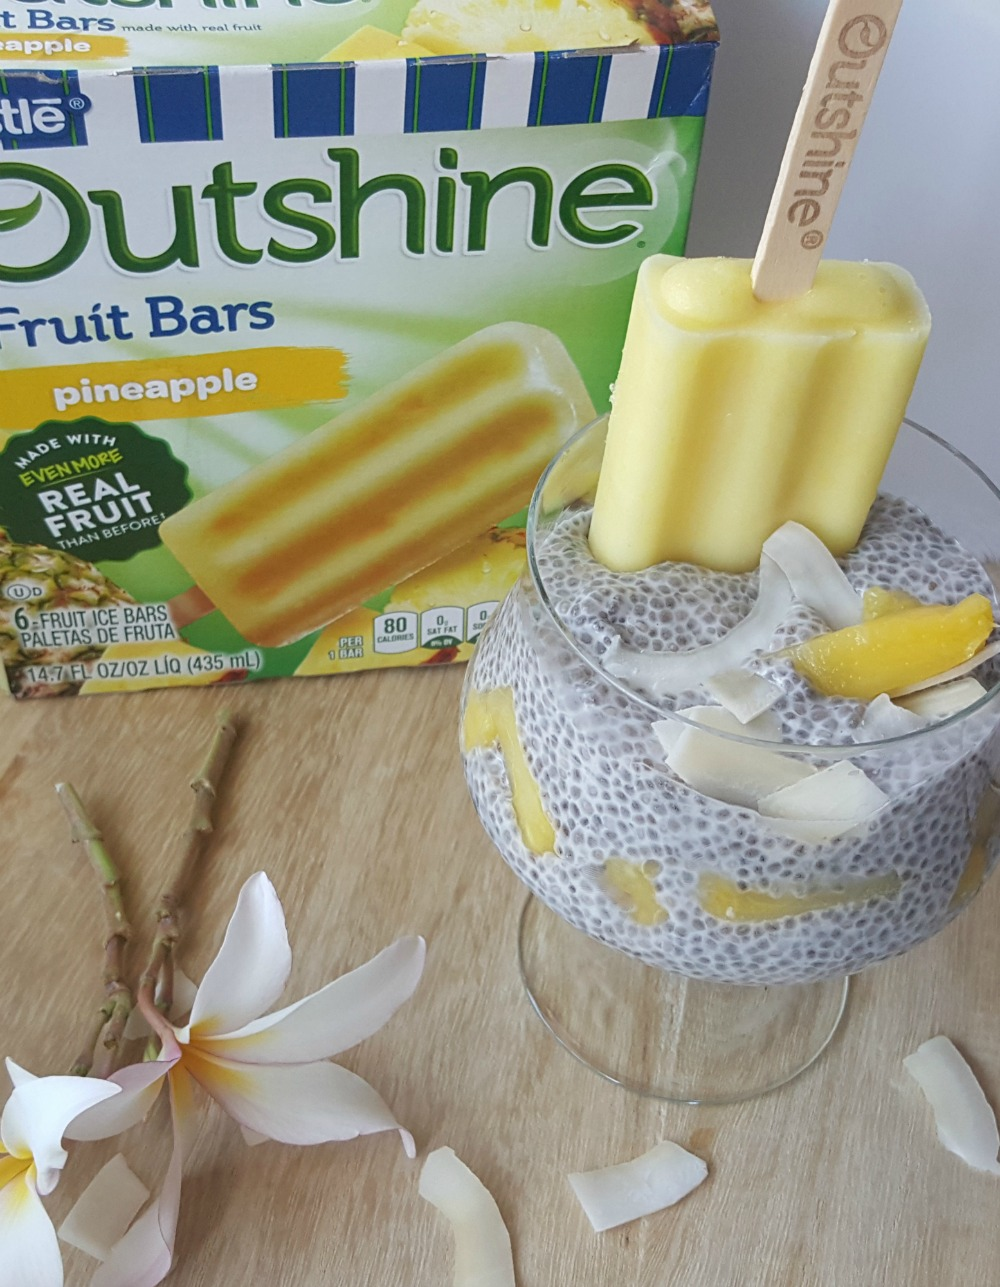 Easy and vegan, this Pina Colada Chia Pudding is also delicious! Make it fun and fresh with Outshine Pineapple Fruit Bar!